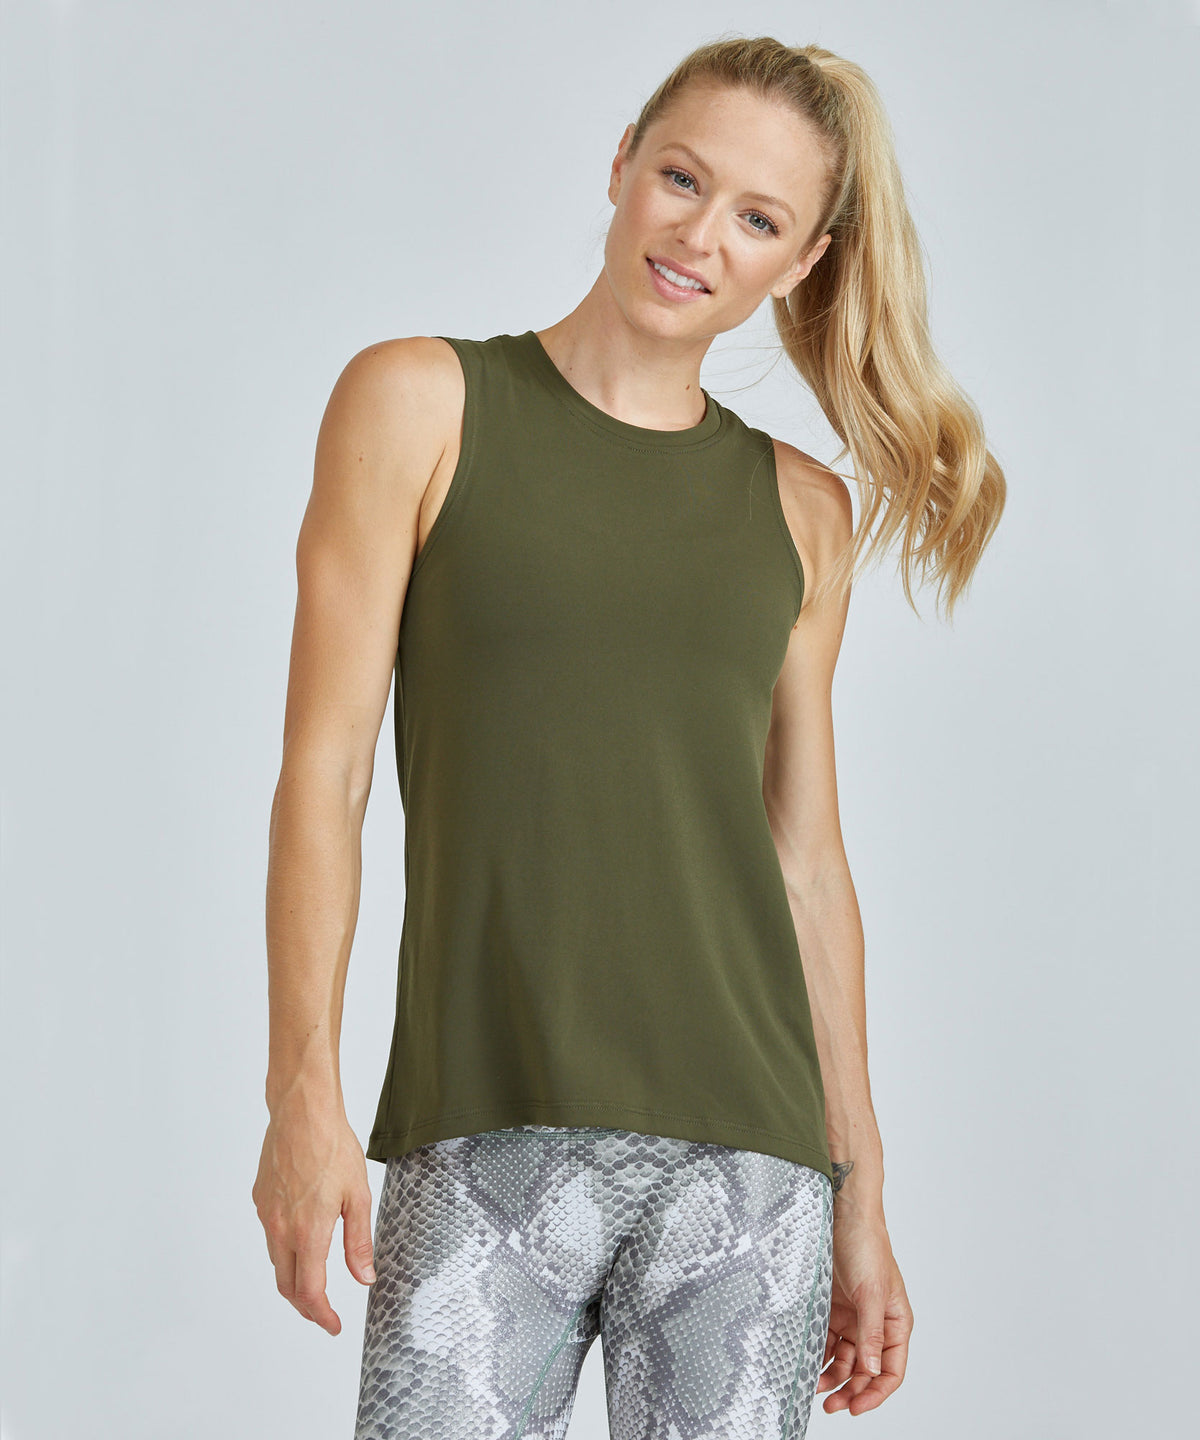 Muscle Tee - Olive Olive Muscle Tee - Women's Activewear Tank Top by PRISMSPORT